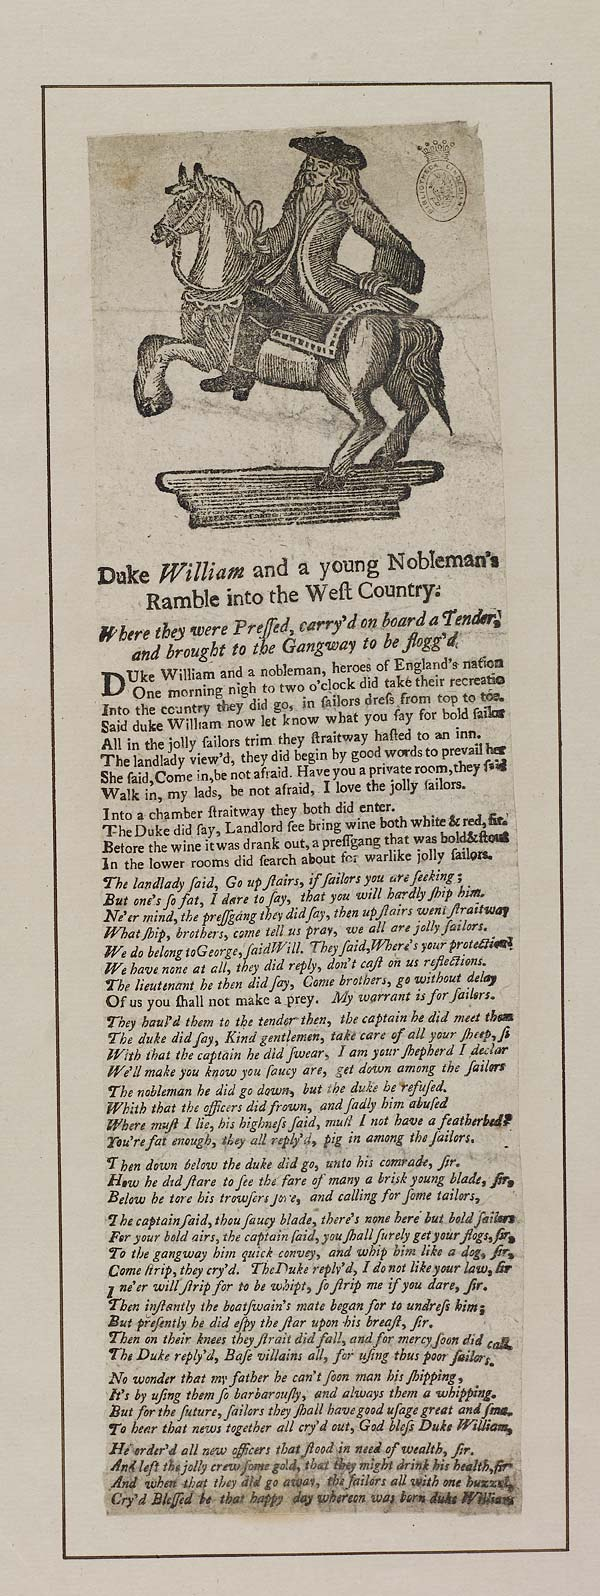 (39) Duke William and a young nobleman's ramble into the west country